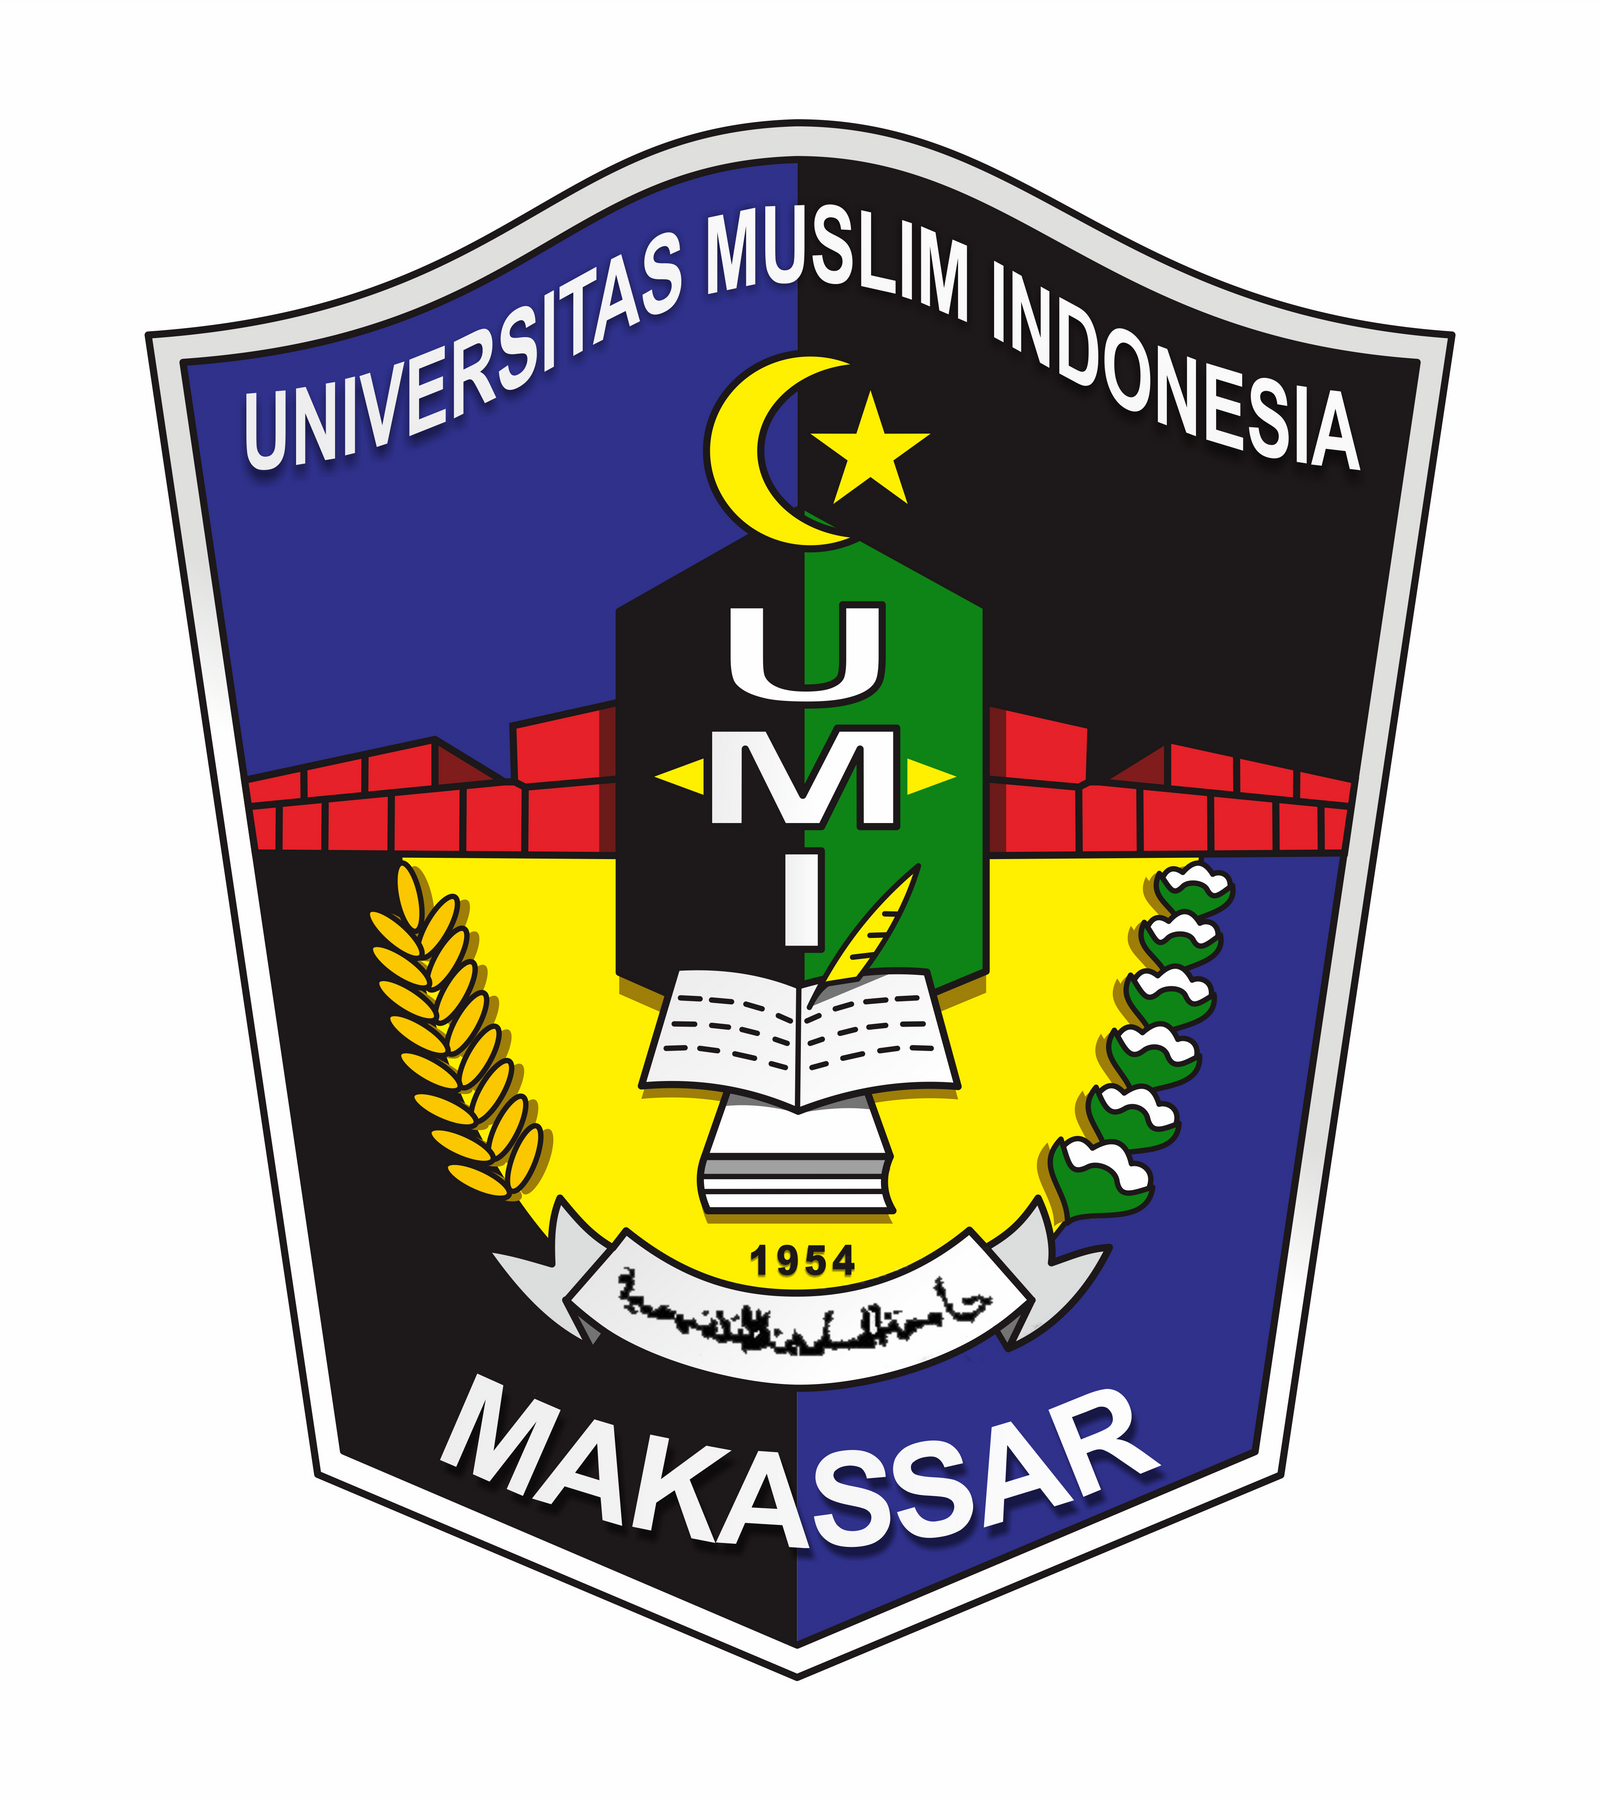 Makassar Indonesia  city images : Universitas Muslim Indonesia Makassar Logo by JessaSyahrul on ...